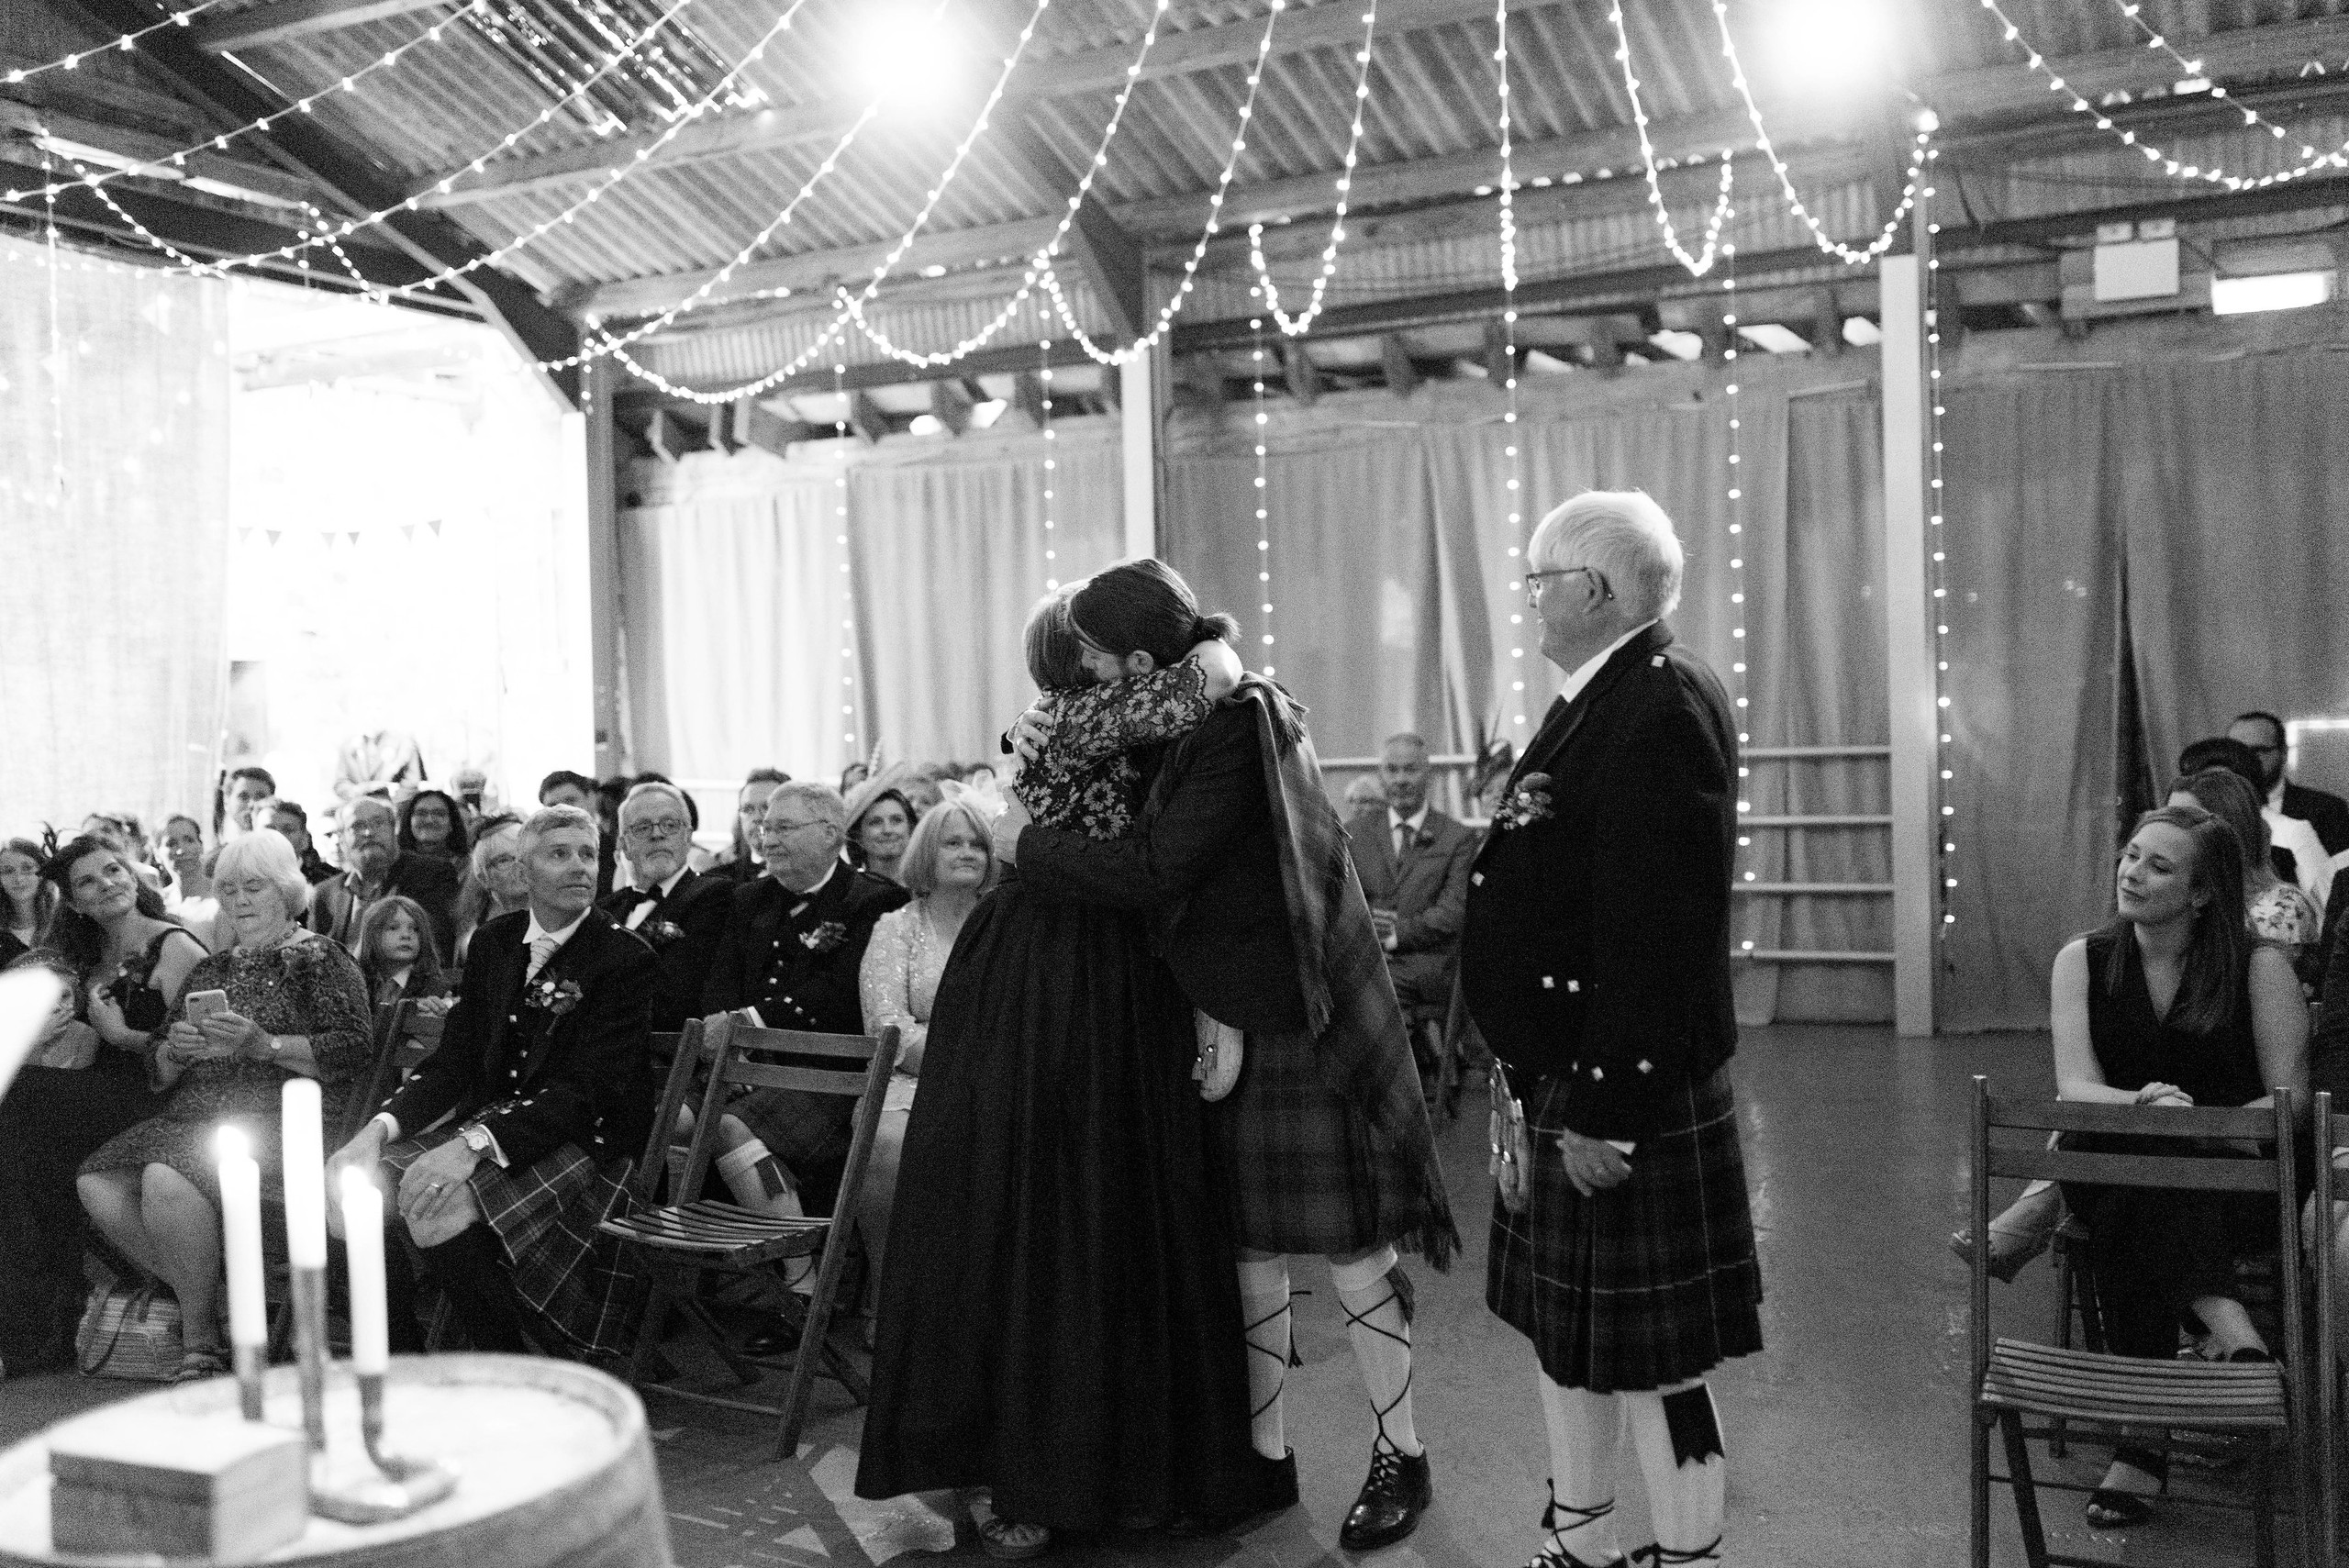 Kinkell Byre Wedding, Kinkell Byre, Gay Wedding Scotland, Gay Wedding Kinkell Byre, Scottish Gay Wedding, Gay friendly wedding photographer, Gay friendly wedding photographer Scotland, Kinkell, Kinkell Byre Wedding Photographer, Kinkell Byre Wedding Photography, Kinkell Byre Wedding Day, Wedding at Kinkell Byre, Rustic Wedding Scotland, Rustic Wedding Ideas, Barn Wedding Scotland, Barn Wedding Venues, Barn Wedding Venues Scotland, Wedding Photographer St Andrews, Wedding Photographer Fife, Wedding Photographer Edinburgh, Wedding Photographer Scotland, Wedding Photographers St Andrews, Wedding Photographers Fife, Wedding Photographers Edinburgh, Wedding Photographers Scotland, light bright wedding photography, light bright wedding photography Scotland, barn wedding photographer Scotland, barn wedding photographer, country wedding photographers Scotland, country wedding photographers Fife, country wedding photographers ayrshire, country wedding photographers Edinburgh, country wedding photographers Perthshire, country wedding photographers Aberdeenshire, country wedding photographers Aberdeen, country wedding photographer Scotland, country wedding photographer Fife, country wedding photographer St Andrews, country wedding photographer Perth, country wedding photographer Perthshire, country wedding photographer Edinburgh, country wedding photographer Ayrshire, light bright wedding photography, light bright wedding photographers, light bright wedding photographer, fine art wedding photographer Scotland, farm wedding Scotland, farm wedding Fife, farm wedding UK, farm wedding photographers, farm wedding photographers Scotland, farm wedding photographers Fife, farm wedding photographer Fife, farm wedding photographer UK, farm weddings UK, farm weddings Scotland, farm wedding, farm weddings, barn weddings, barn wedding, wedding venues Scotland, barn wedding venues Scotland, rustic wedding venues Scotland, rustic wedding venues uk, rustic wedding venues Fife, converted barn wedding venues, converted barn wedding, converted barn wedding venues scotland, converted barn wedding venues Fife, dog friendly wedding venues, dog-friendly wedding venue scotland, rustic wedding, rustic wedding scotland, gay wedding scotland, gay wedding, gay wedding fife, lbgtq+ weddings scotland, lgbtq+ wedding vendors Scotland, lgbtq+ wedding venues Scotland, lgbtq+ wedding photographer Scotland, lgbtq+ wedding photographers Scotland, lgbtq+ friendly wedding photographer Scotland, farm wedding Scotland, Kinkell Byre Weddings, Kinkell Byre Wedding, Kinkell Byre, Gay Wedding Scotland, Gay Wedding Kinkell Byre, Scottish Gay Wedding, Gay friendly wedding photographer, Gay friendly wedding photographer Scotland, Kinkell, Kinkell Byre Wedding Photographer, Kinkell Byre Wedding Photography, Kinkell Byre Wedding Day, Wedding at Kinkell Byre, Rustic Wedding Scotland, Rustic Wedding Ideas, Barn Wedding Scotland, Barn Wedding Venues, Barn Wedding Venues Scotland, Wedding Photographer St Andrews, Wedding Photographer Fife, Wedding Photographer Edinburgh, Wedding Photographer Scotland, Wedding Photographers St Andrews, Wedding Photographers Fife, Wedding Photographers Edinburgh, Wedding Photographers Scotland, light bright wedding photography, light bright wedding photography Scotland, barn wedding photographer Scotland, barn wedding photographer, country wedding photographers Scotland, country wedding photographers Fife, country wedding photographers ayrshire, country wedding photographers Edinburgh, country wedding photographers Perthshire, country wedding photographers Aberdeenshire, country wedding photographers Aberdeen, country wedding photographer Scotland, country wedding photographer Fife, country wedding photographer St Andrews, country wedding photographer Perth, country wedding photographer Perthshire, country wedding photographer Edinburgh, country wedding photographer Ayrshire, light bright wedding photography, light bright wedding photographers, light bright wedding photographer, fine art wedding photographer Scotland, farm wedding Scotland, farm wedding Fife, farm wedding UK, farm wedding photographers, farm wedding photographers Scotland, farm wedding photographers Fife, farm wedding photographer Fife, farm wedding photographer UK, farm weddings UK, farm weddings Scotland, farm wedding, farm weddings, barn weddings, barn wedding, wedding venues Scotland, barn wedding venues Scotland, rustic wedding venues Scotland, rustic wedding venues uk, rustic wedding venues Fife, converted barn wedding venues, converted barn wedding, converted barn wedding venues scotland, converted barn wedding venues Fife, dog friendly wedding venues, dog-friendly wedding venue scotland, rustic wedding, rustic wedding scotland, gay wedding scotland, gay wedding, gay wedding fife, lbgtq+ weddings scotland, lgbtq+ wedding vendors Scotland, lgbtq+ wedding venues Scotland, lgbtq+ wedding photographer Scotland, lgbtq+ wedding photographers Scotland, lgbtq+ friendly wedding photographer Scotland, farm wedding Scotland, Kinkell Byre Weddings, Kinkell Byre Wedding, Kinkell Byre, Gay Wedding Scotland, Gay Wedding Kinkell Byre, Scottish Gay Wedding, Gay friendly wedding photographer, Gay friendly wedding photographer Scotland, Kinkell, Kinkell Byre Wedding Photographer, Kinkell Byre Wedding Photography, Kinkell Byre Wedding Day, Wedding at Kinkell Byre, Rustic Wedding Scotland, Rustic Wedding Ideas, Barn Wedding Scotland, Barn Wedding Venues, Barn Wedding Venues Scotland, Wedding Photographer St Andrews, Wedding Photographer Fife, Wedding Photographer Edinburgh, Wedding Photographer Scotland, Wedding Photographers St Andrews, Wedding Photographers Fife, Wedding Photographers Edinburgh, Wedding Photographers Scotland, light bright wedding photography, light bright wedding photography Scotland, barn wedding photographer Scotland, barn wedding photographer, country wedding photographers Scotland, country wedding photographers Fife, country wedding photographers ayrshire, country wedding photographers Edinburgh, country wedding photographers Perthshire, country wedding photographers Aberdeenshire, country wedding photographers Aberdeen, country wedding photographer Scotland, country wedding photographer Fife, country wedding photographer St Andrews, country wedding photographer Perth, country wedding photographer Perthshire, country wedding photographer Edinburgh, country wedding photographer Ayrshire, light bright wedding photography, light bright wedding photographers, light bright wedding photographer, fine art wedding photographer Scotland, farm wedding Scotland, farm wedding Fife, farm wedding UK, farm wedding photographers, farm wedding photographers Scotland, farm wedding photographers Fife, farm wedding photographer Fife, farm wedding photographer UK, farm weddings UK, farm weddings Scotland, farm wedding, farm weddings, barn weddings, barn wedding, wedding venues Scotland, barn wedding venues Scotland, rustic wedding venues Scotland, rustic wedding venues uk, rustic wedding venues Fife, converted barn wedding venues, converted barn wedding, converted barn wedding venues scotland, converted barn wedding venues Fife, dog friendly wedding venues, dog-friendly wedding venue scotland, rustic wedding, rustic wedding scotland, gay wedding scotland, gay wedding, gay wedding fife, lbgtq+ weddings scotland, lgbtq+ wedding vendors Scotland, lgbtq+ wedding venues Scotland, lgbtq+ wedding photographer Scotland, lgbtq+ wedding photographers Scotland, lgbtq+ friendly wedding photographer Scotland, farm wedding Scotland, Kinkell Byre Weddings